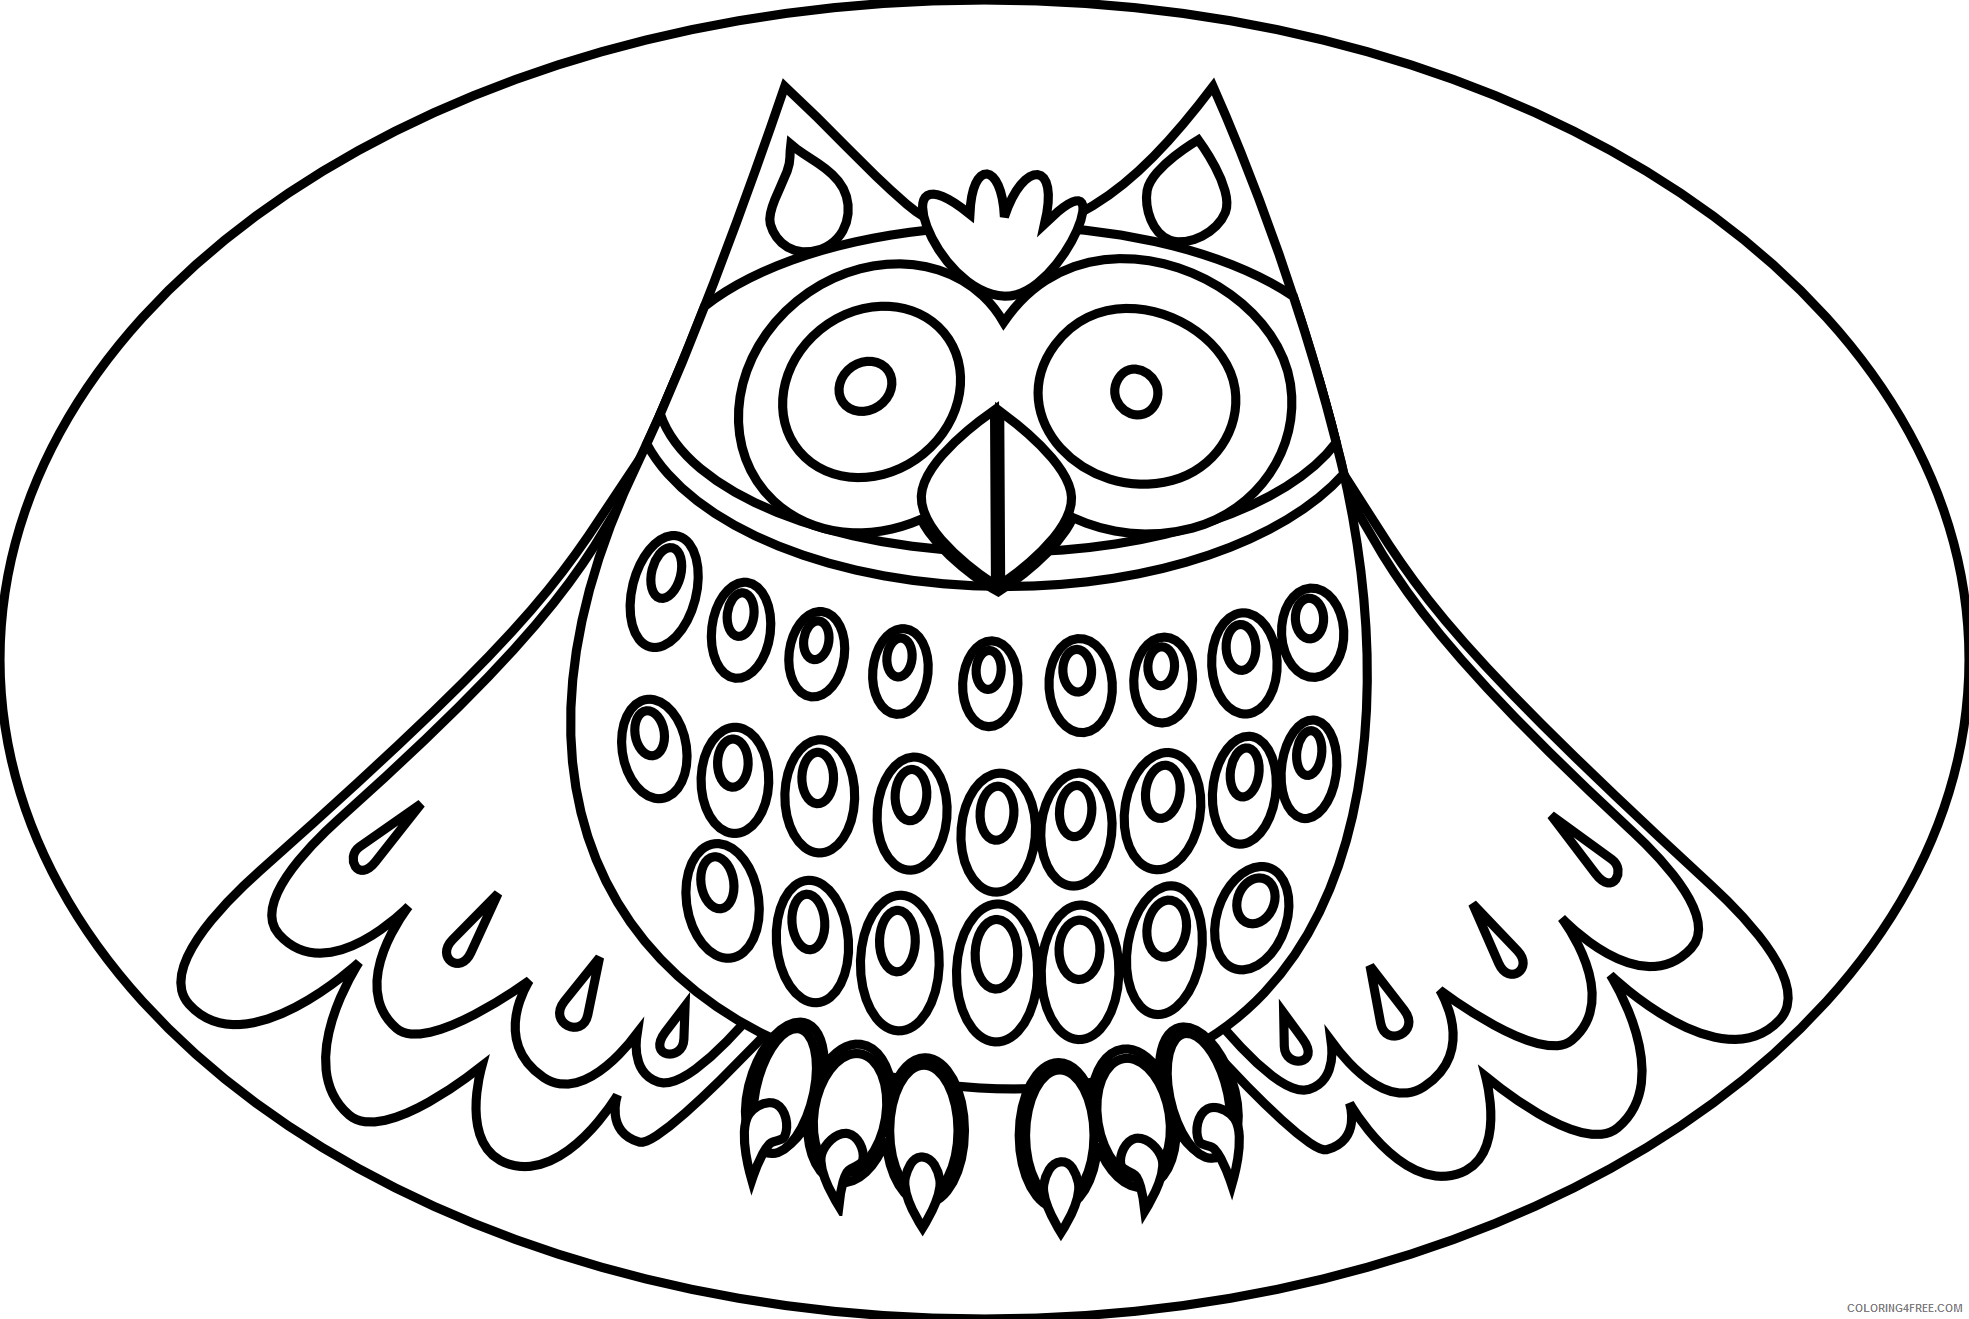 Cute Owl Coloring Pages cute owl black white line Printable Coloring4free